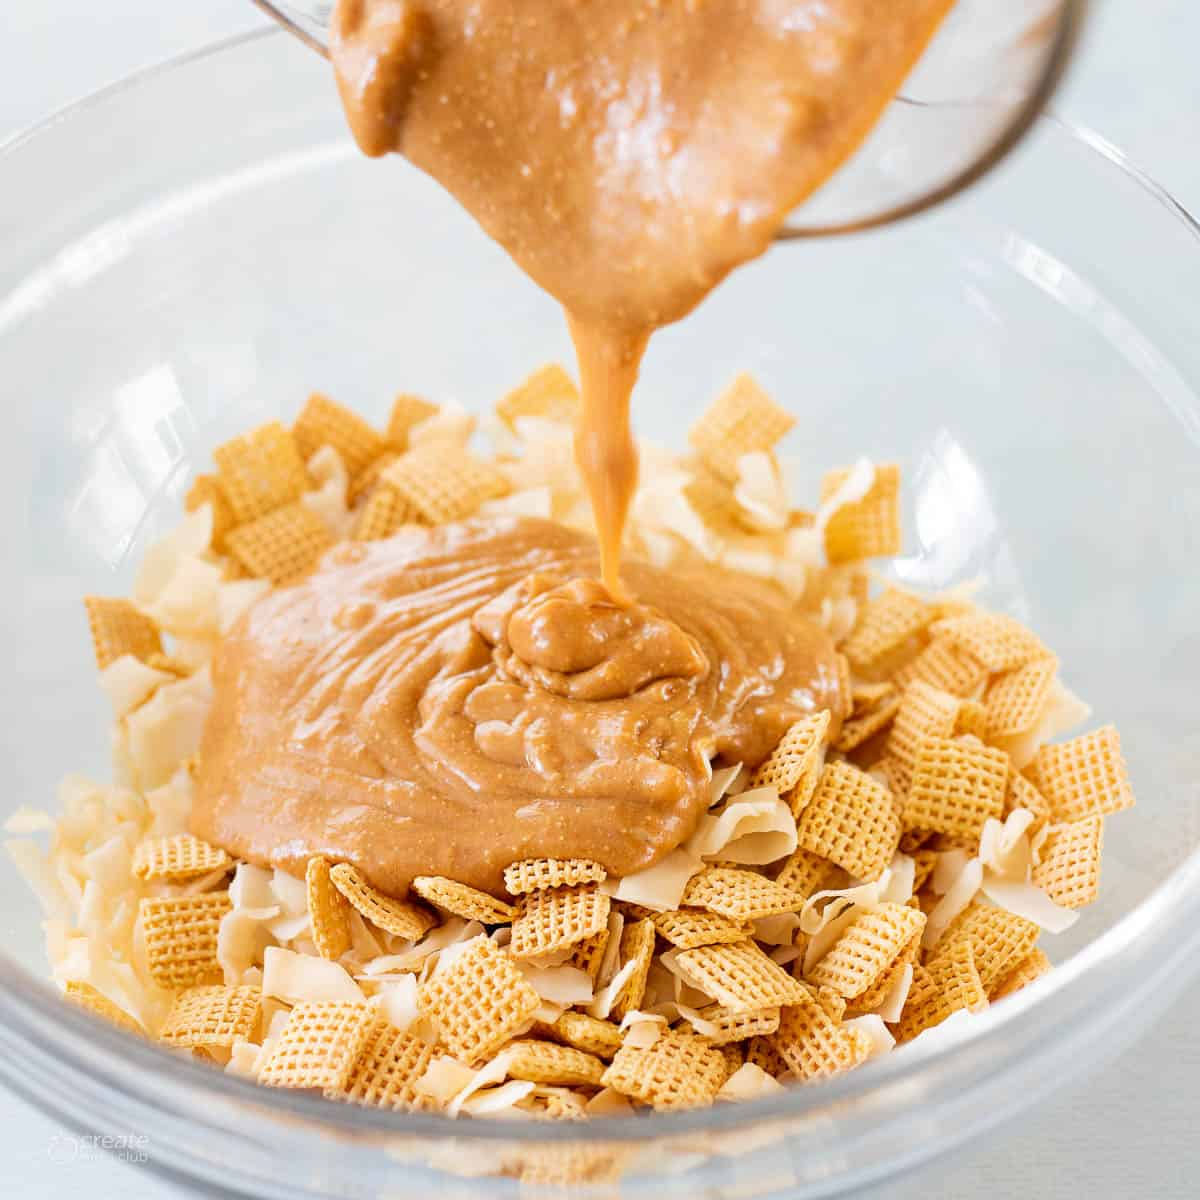 creamy peanut butter poured over Chex cereal in bowl